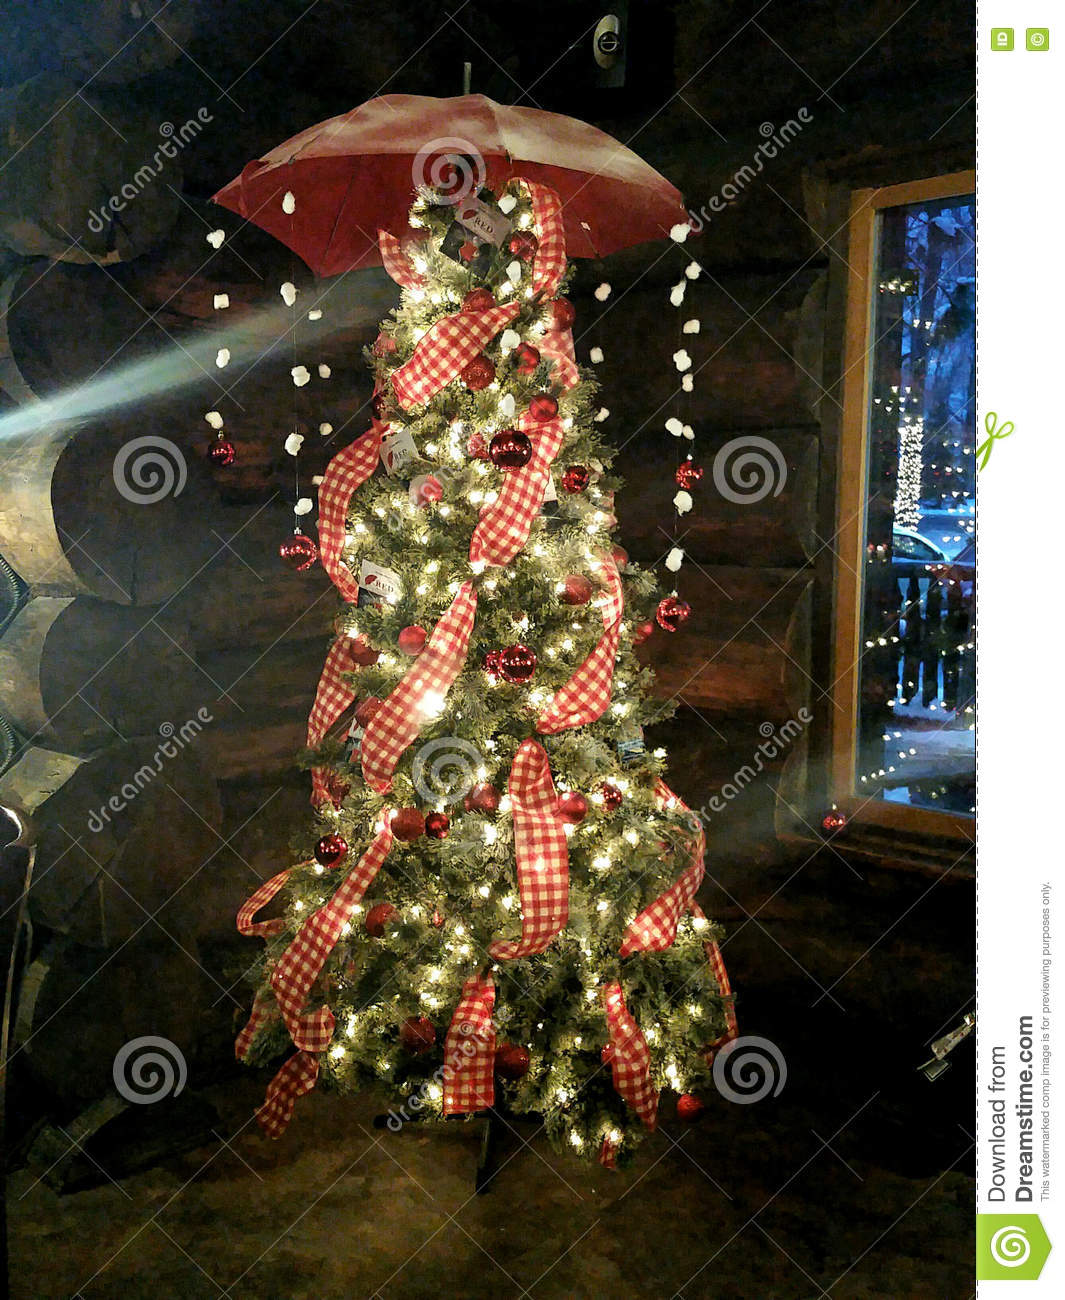 colorfully decorated christmas tree with umbrella and string lights hanging from the top - Best Way To String Lights On A Christmas Tree